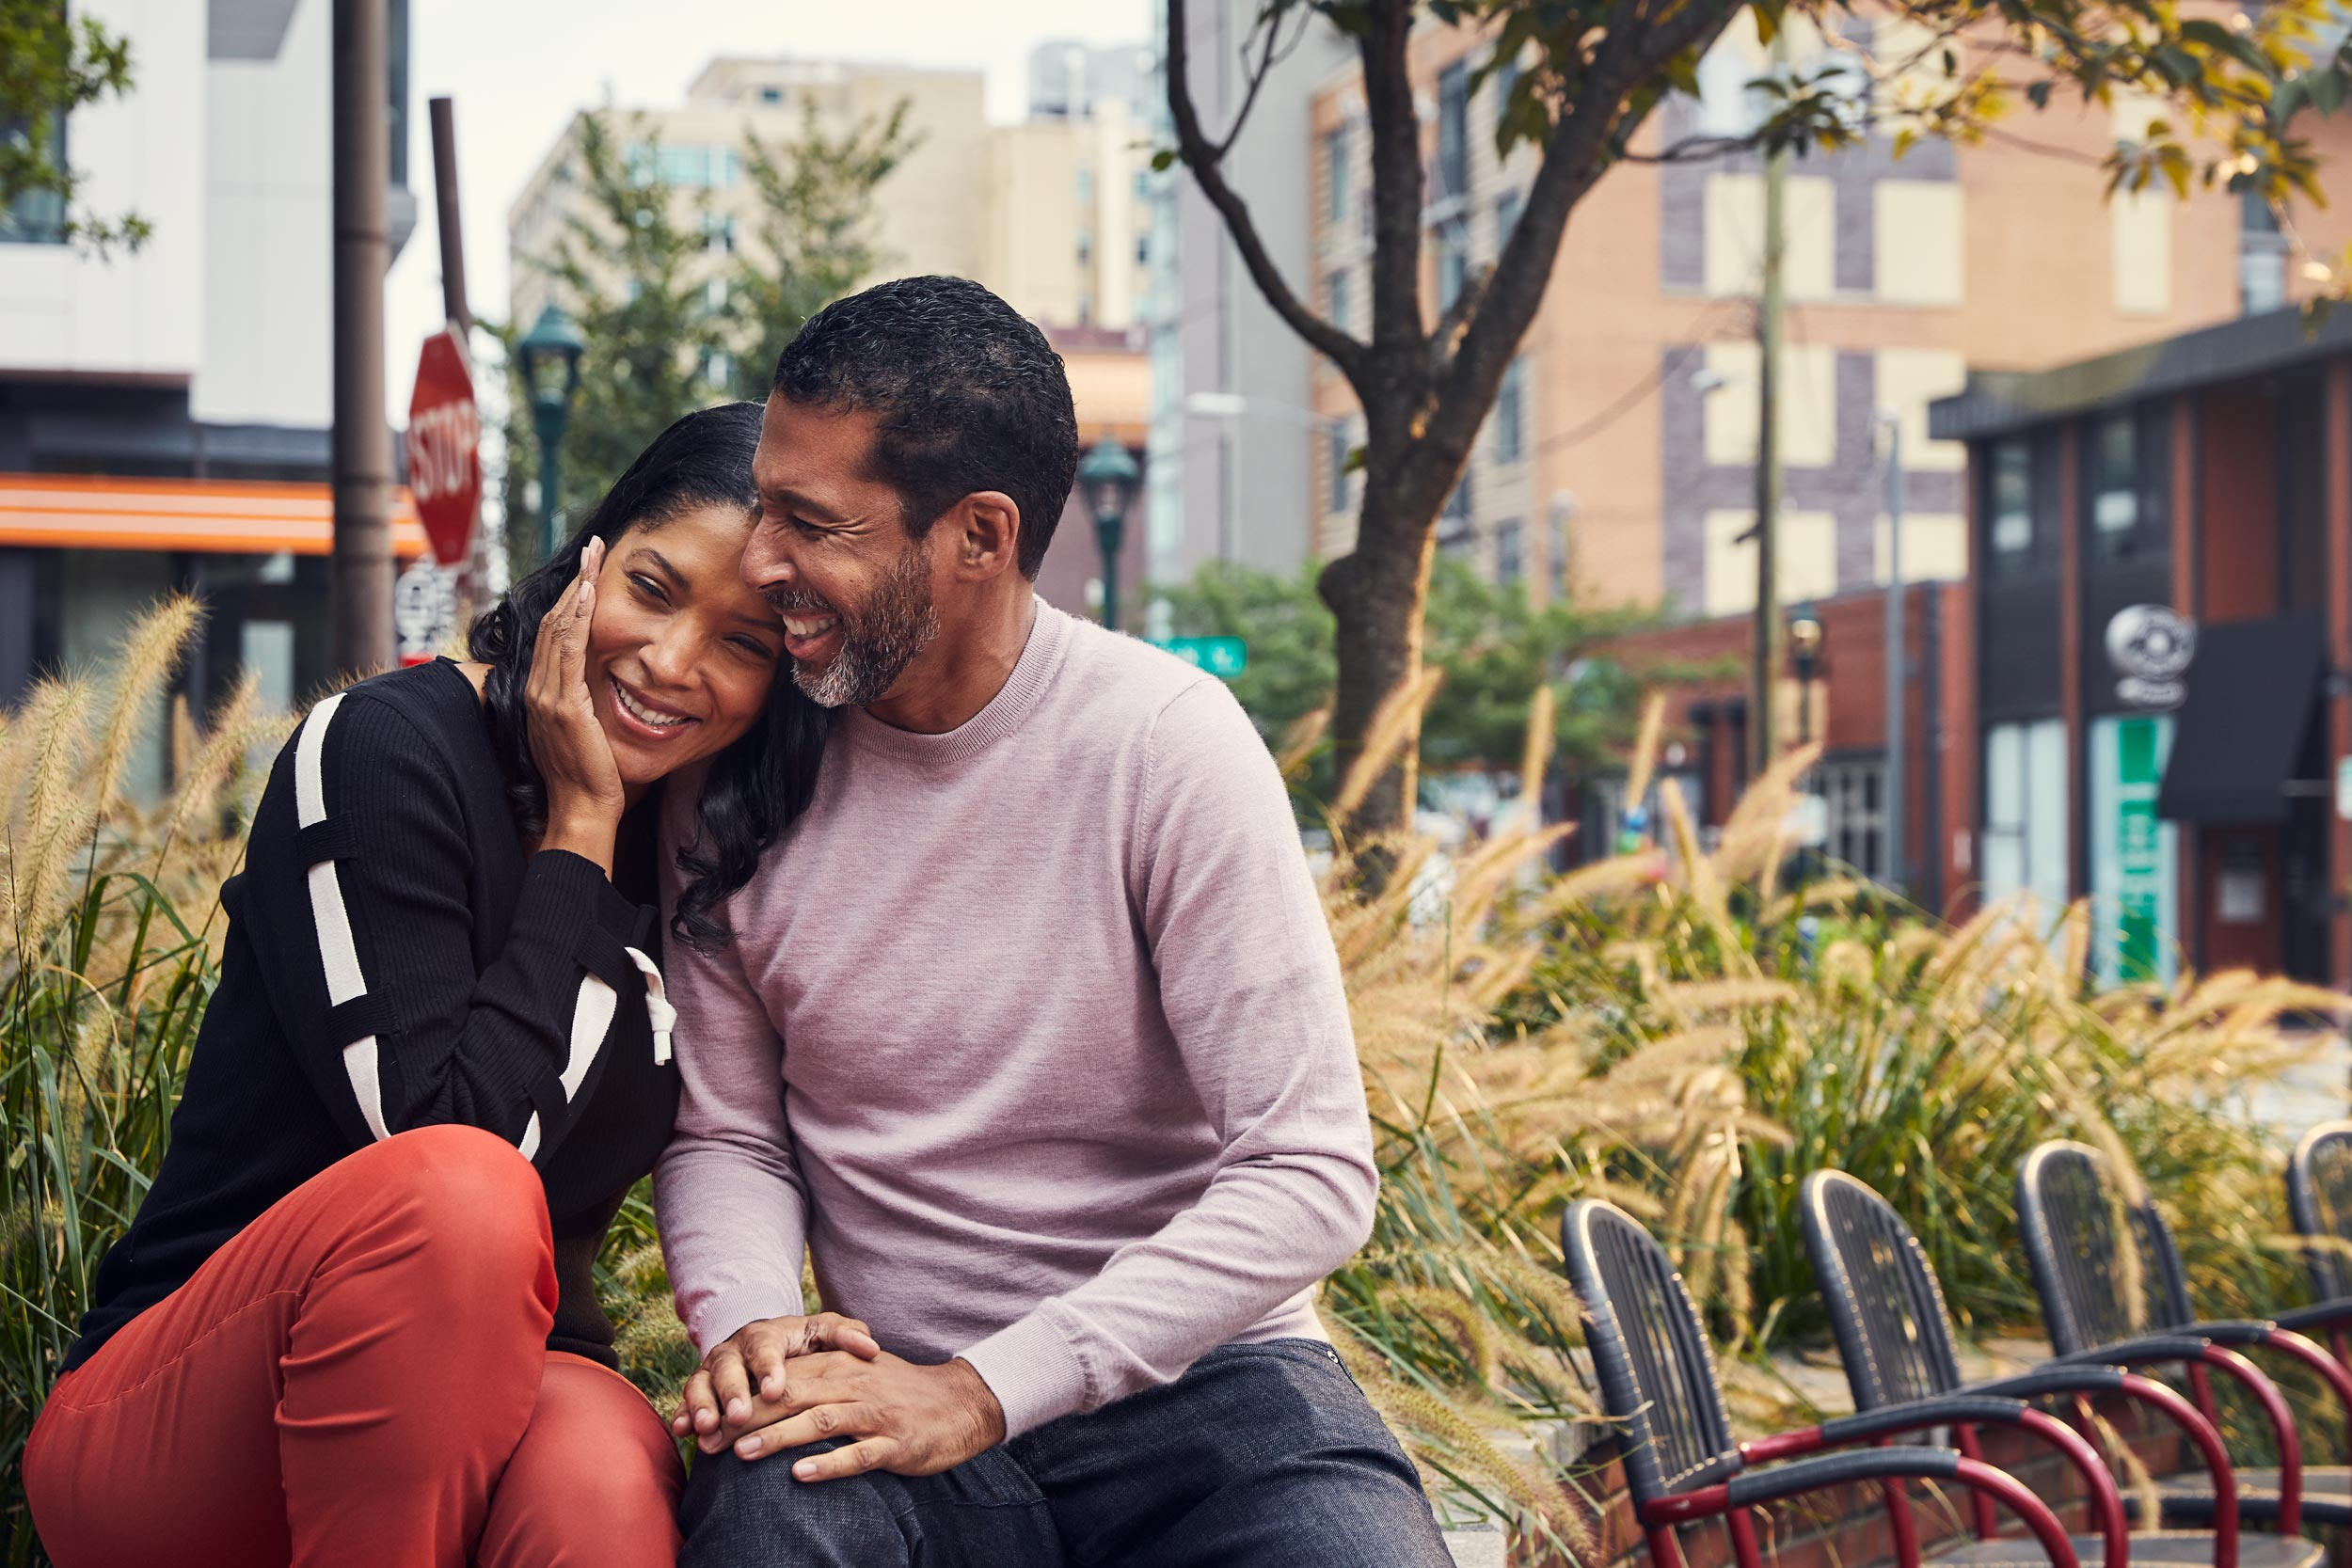 mature couple embracing in park, washington dc commercial photography